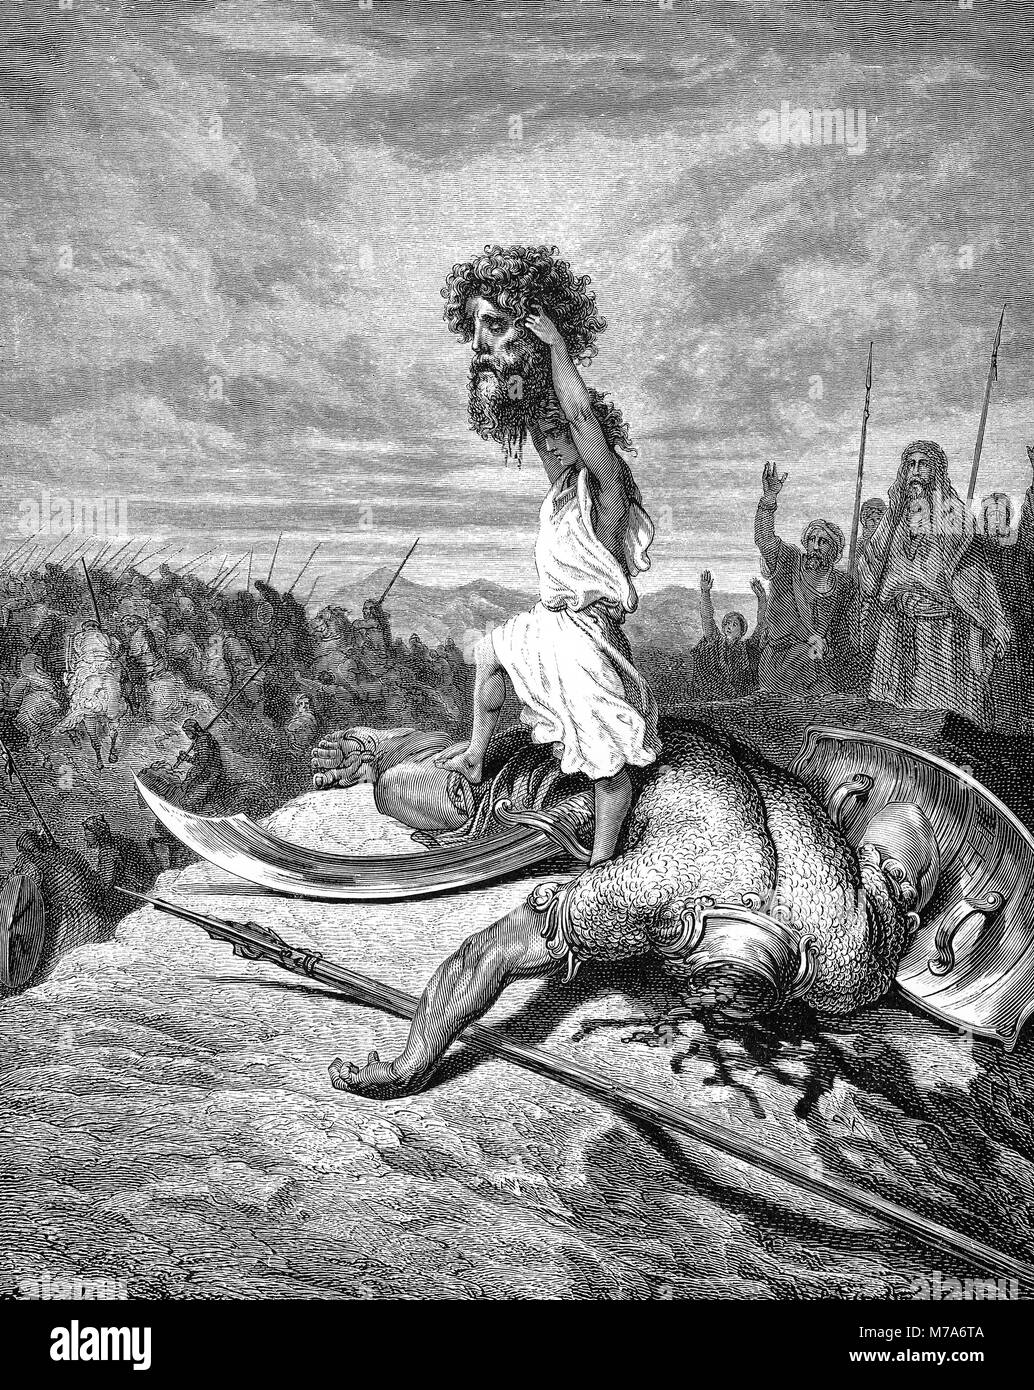 David with the head of Goliath (Book of Samuel). Illustration by Gustave Dore. - Stock Image